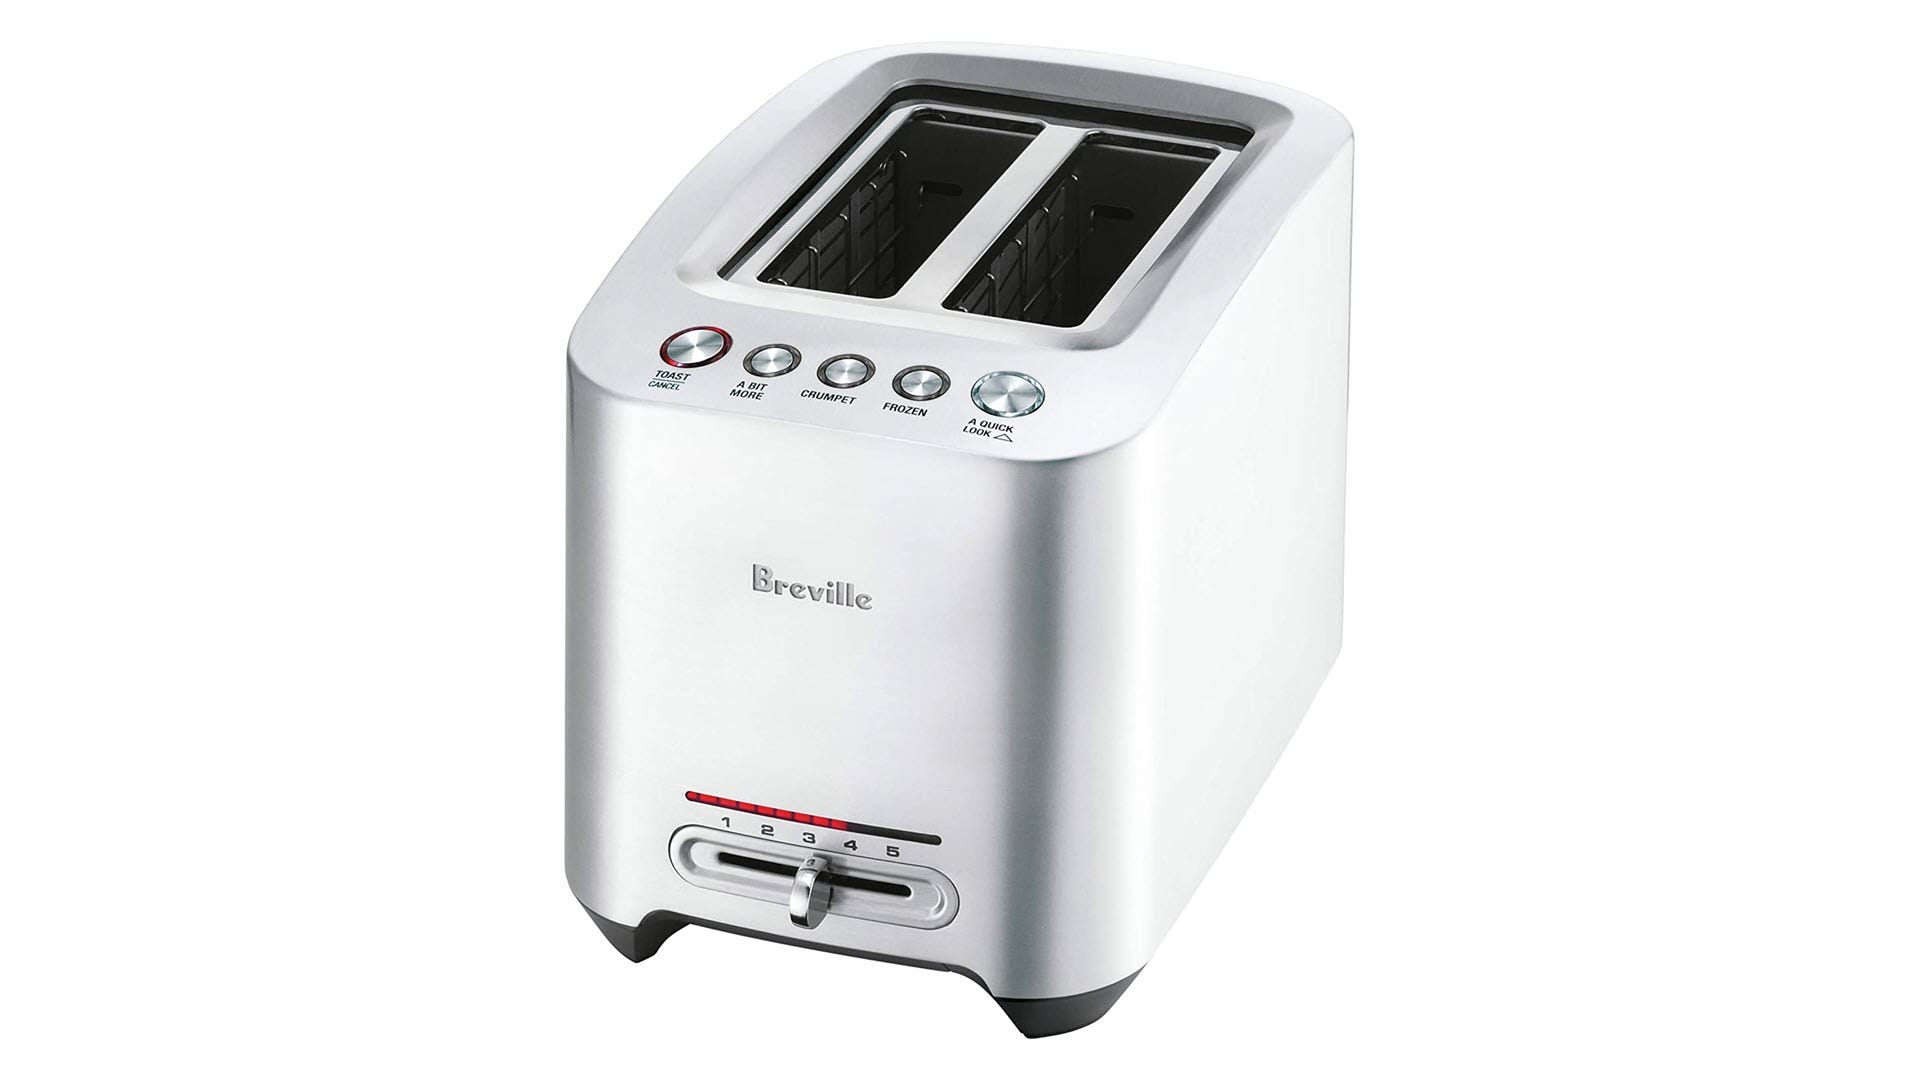 A Breville Two-slice toaster